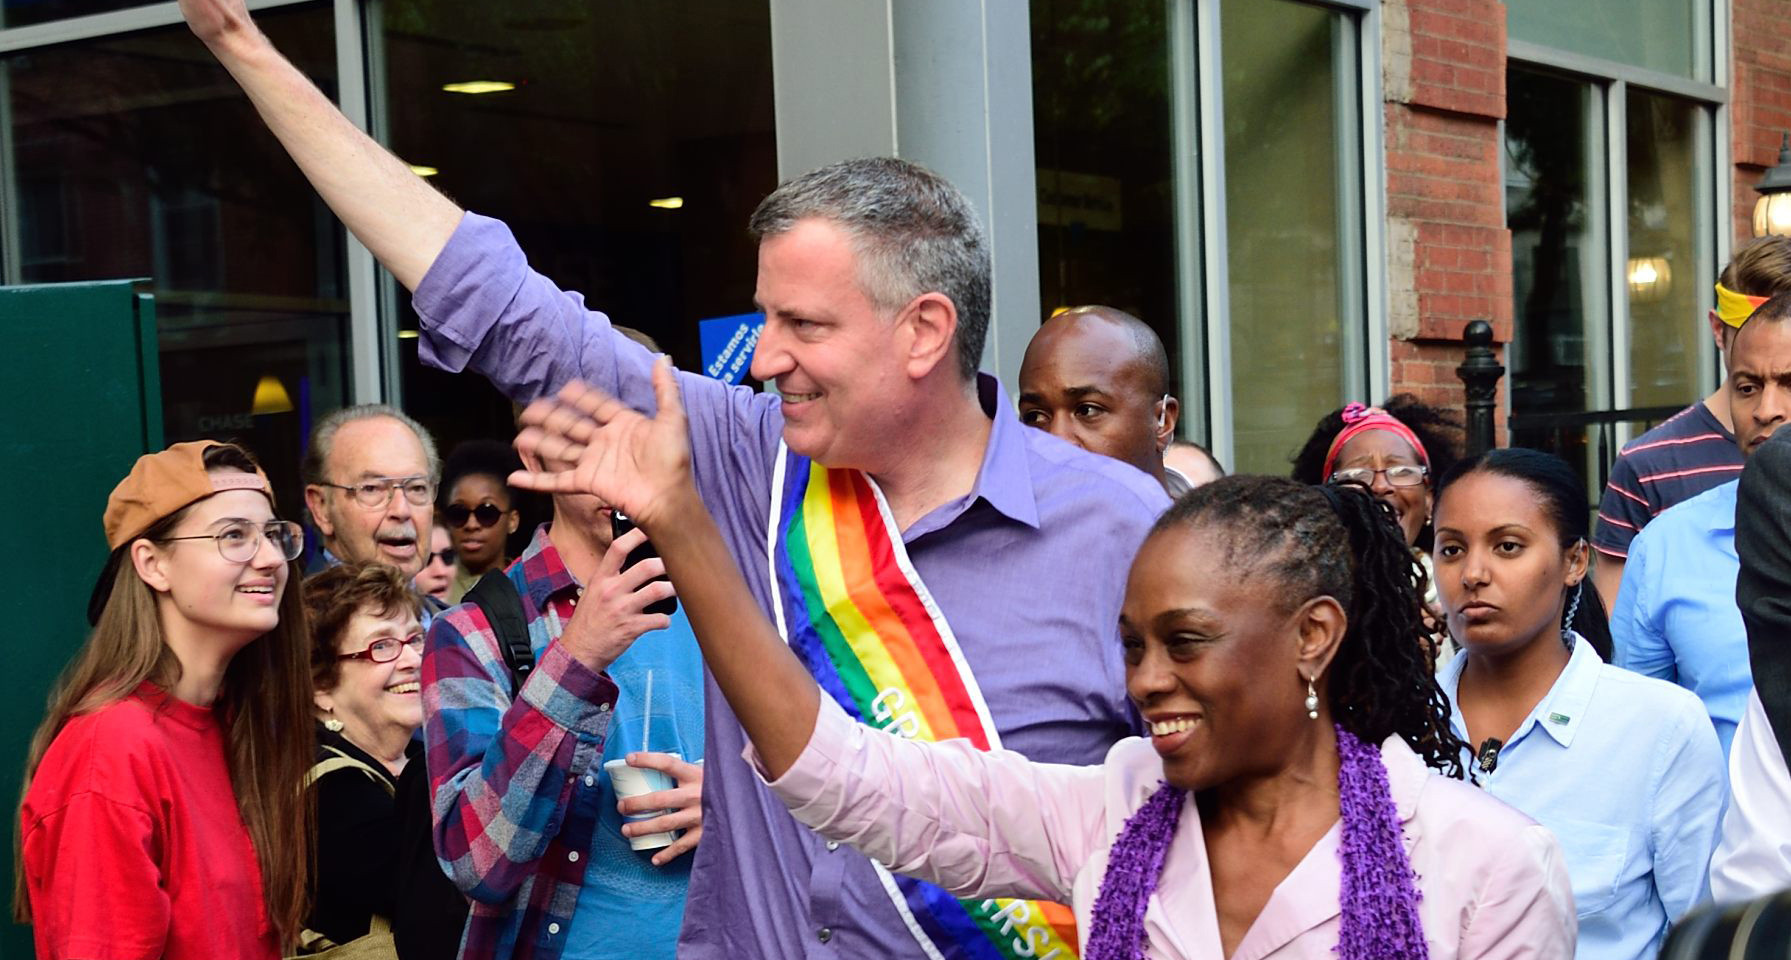 Bill de Blaiso and Chirlane McCray